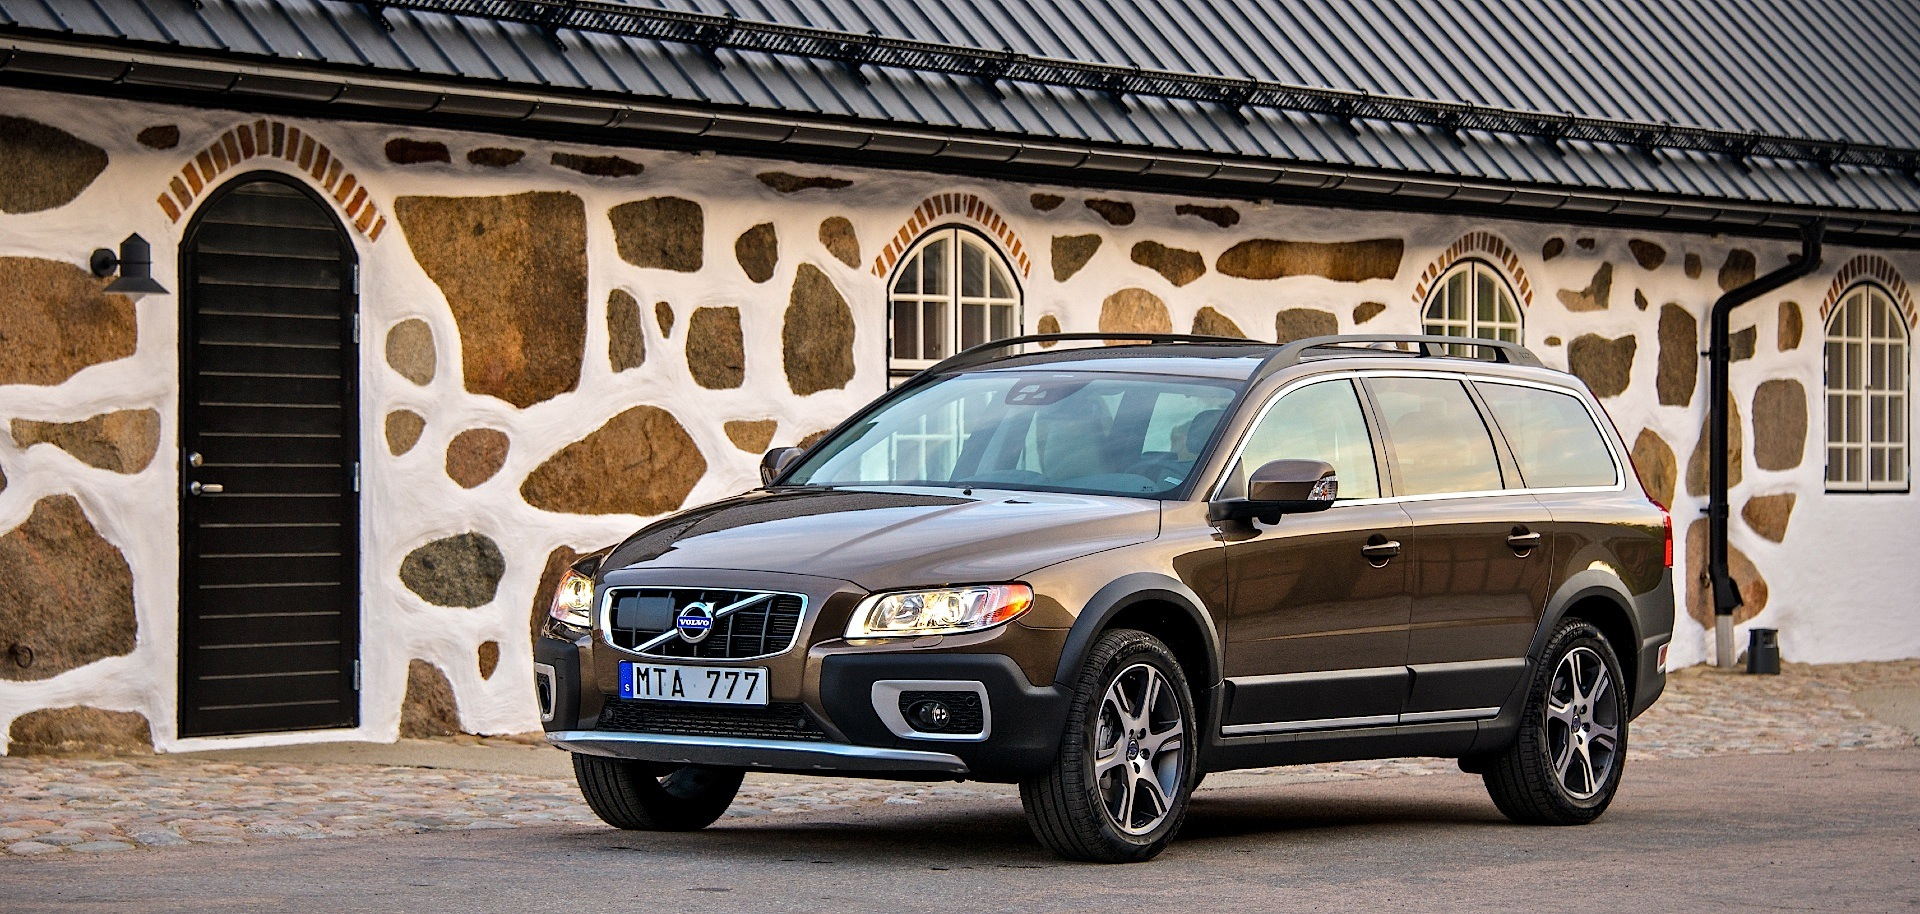 VOLVO XC70 specs & photos - 2007, 2008, 2009, 2010, 2011, 2012, 2013, 2014, 2015, 2016 ...